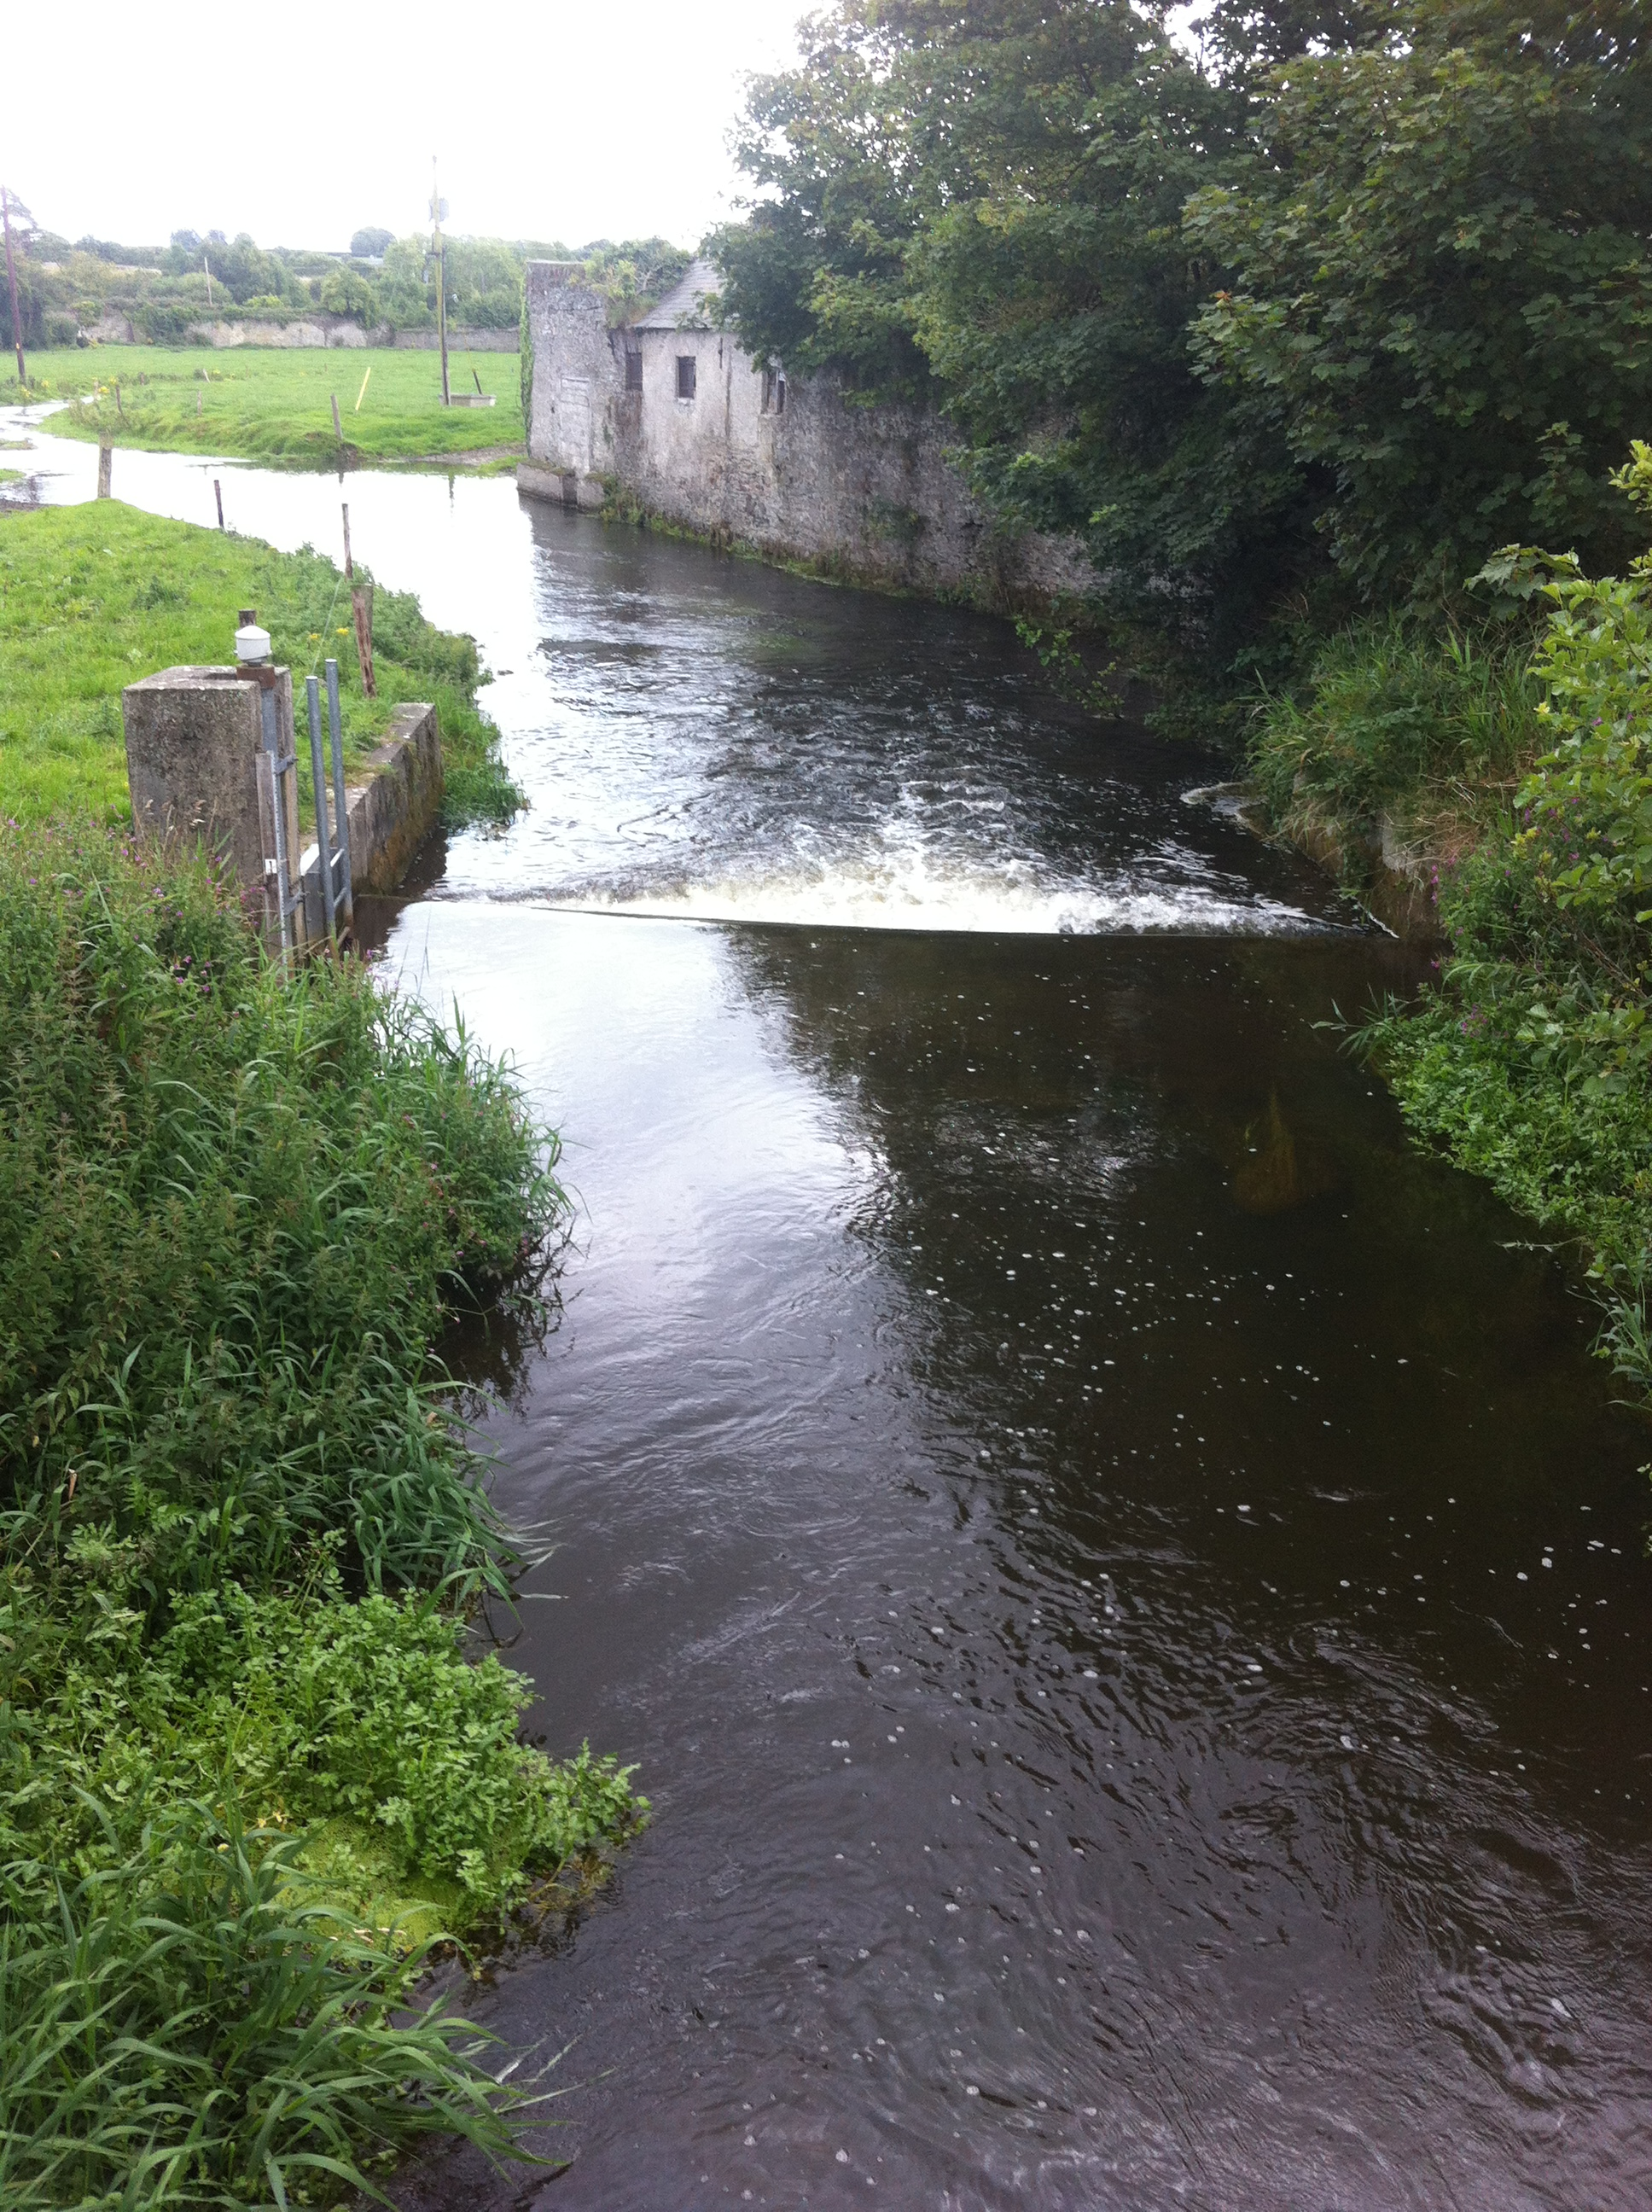 The river Greese, Co. Kildare